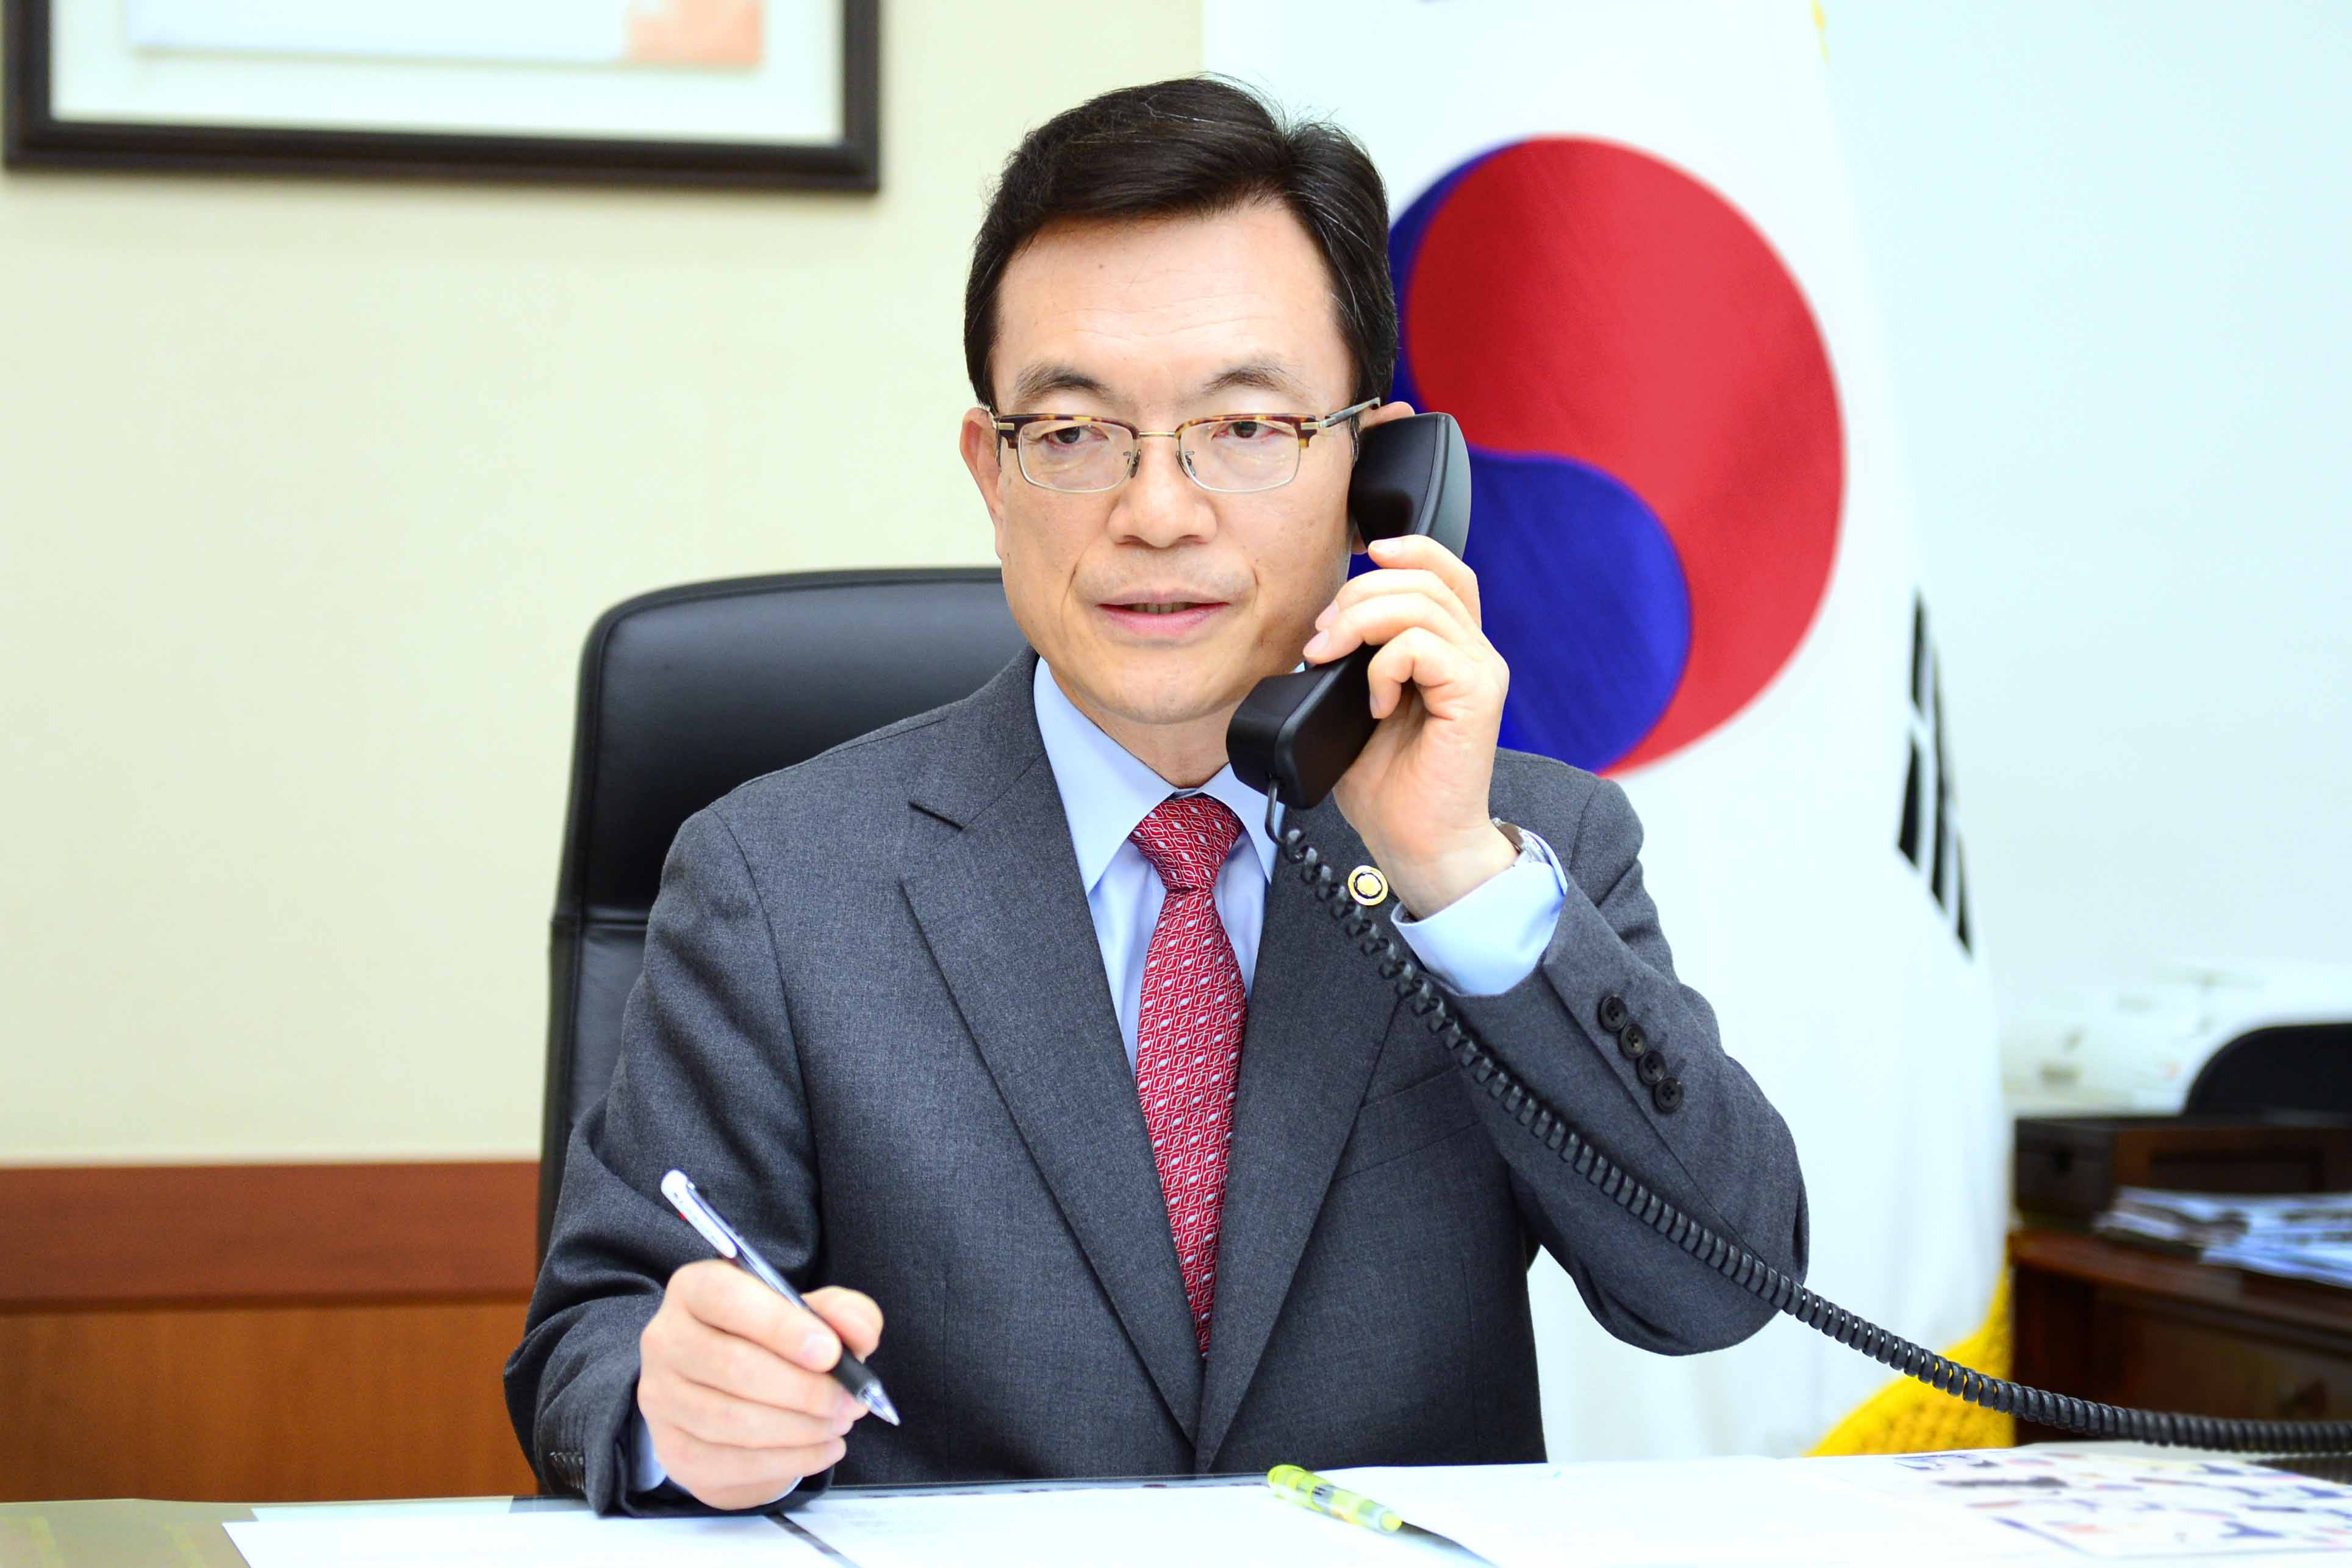 Outcome of Teleconference on COVID-19 Response between Vice Minister of Foreign Affairs Cho and his Counterparts